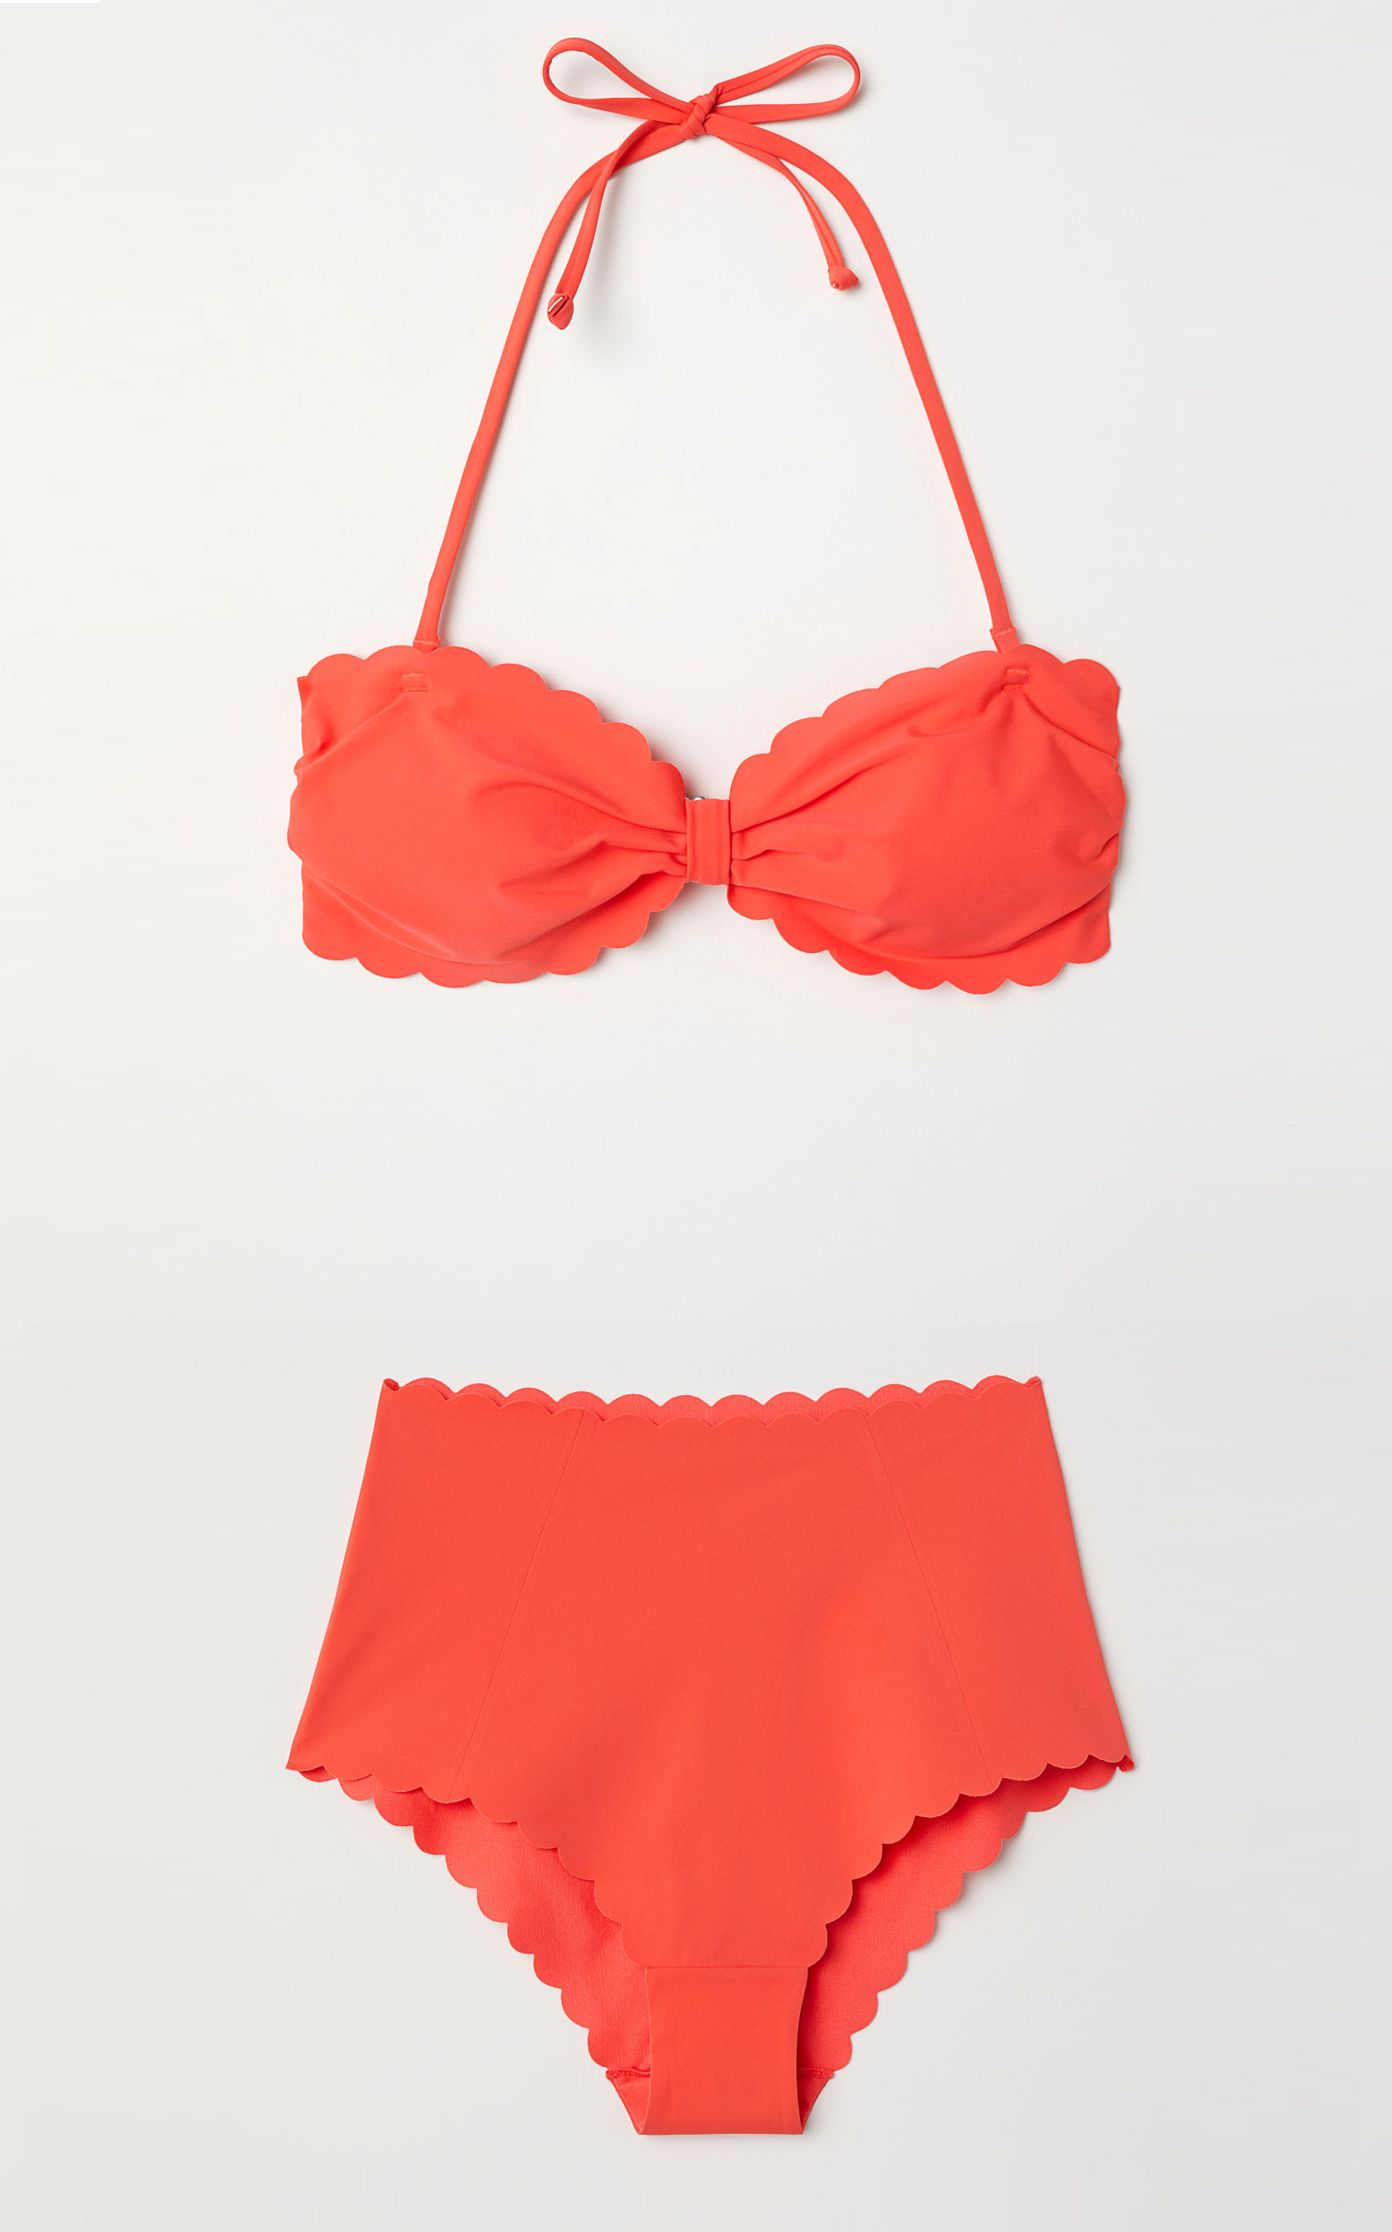 8c1ed6dfd42e2 H&M Has the Cutest Swimsuits for Summer Starting at $7.99 | Swimwear ...